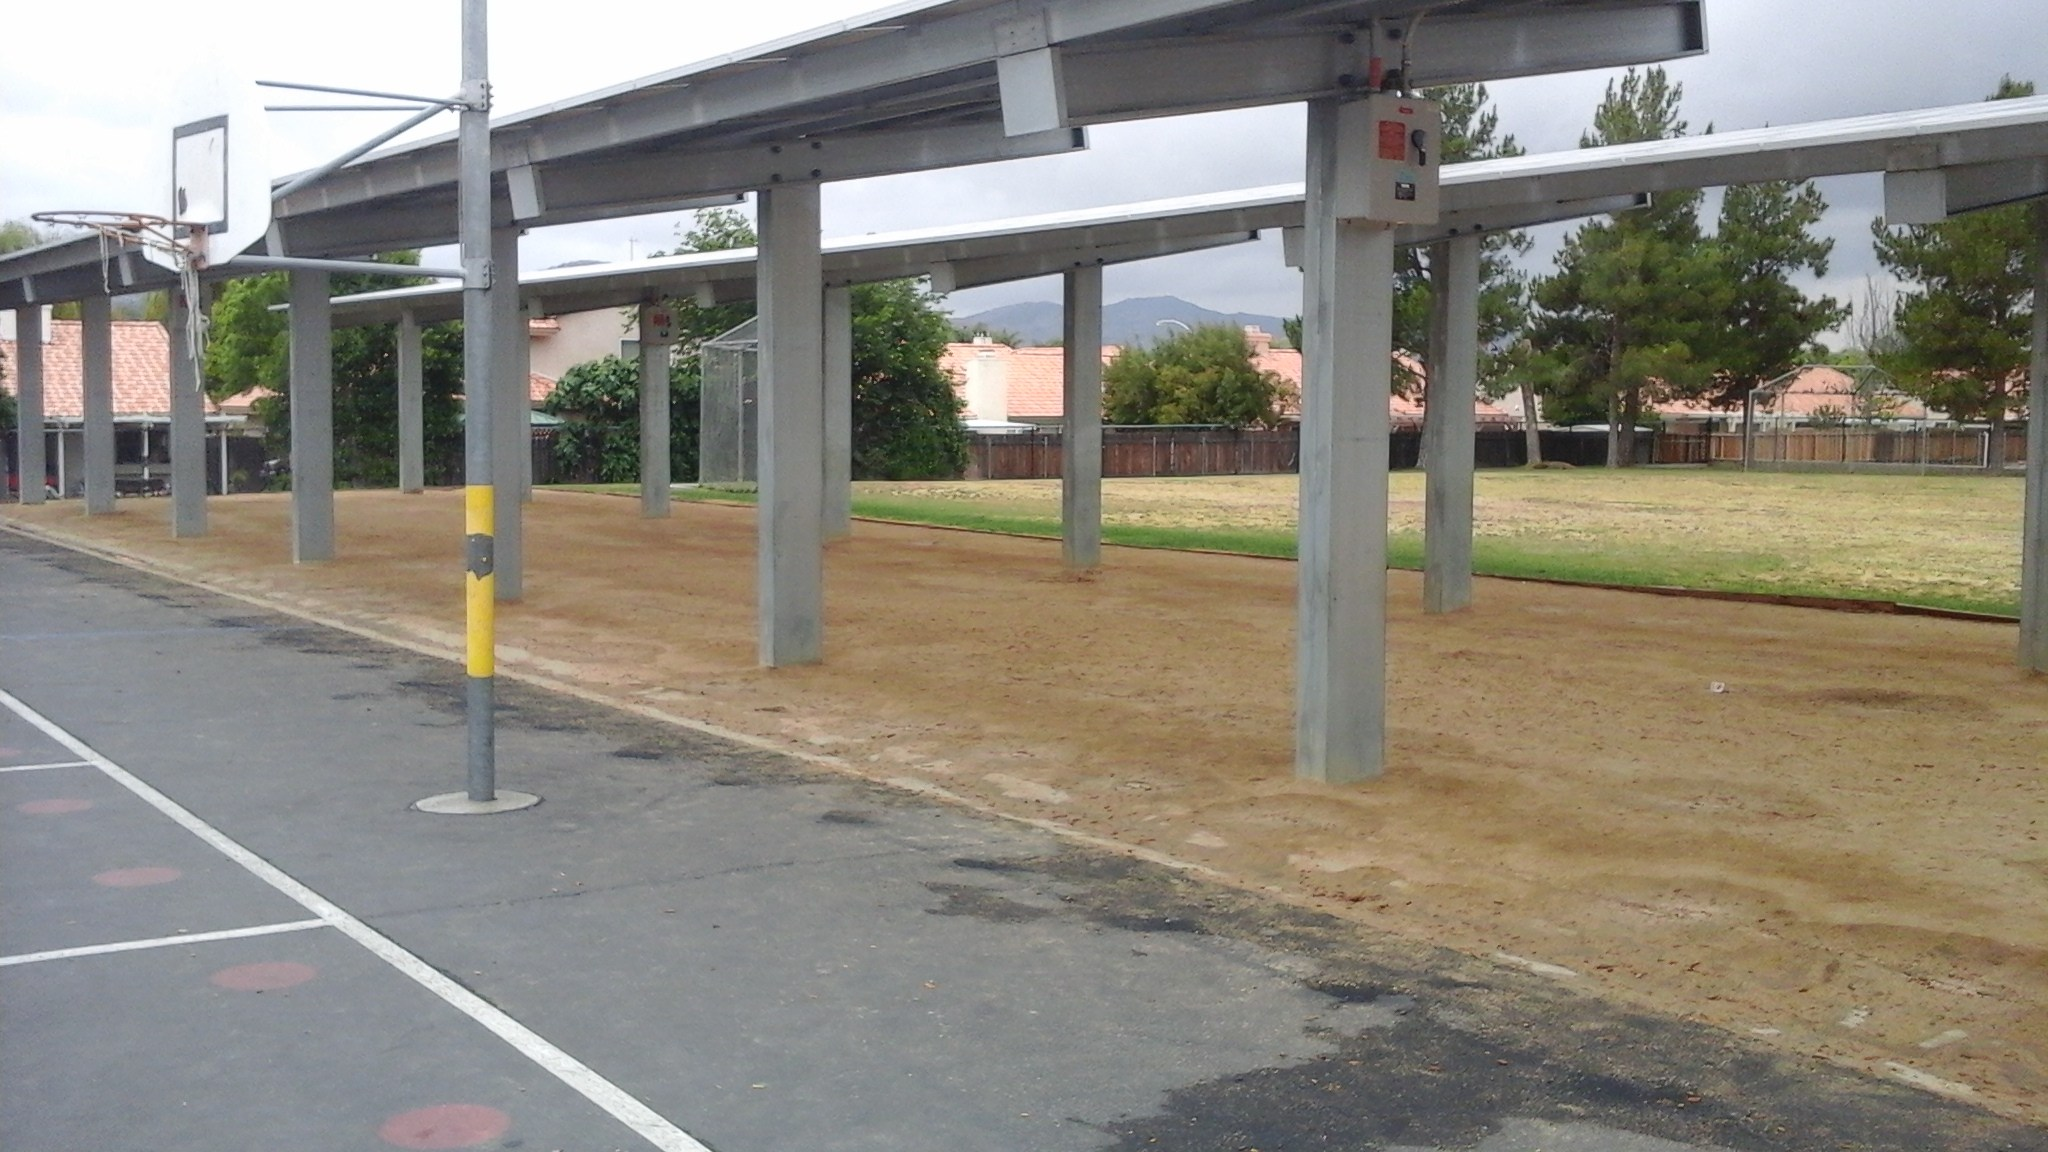 Drought resistant turf project - Fruitvale Elementary